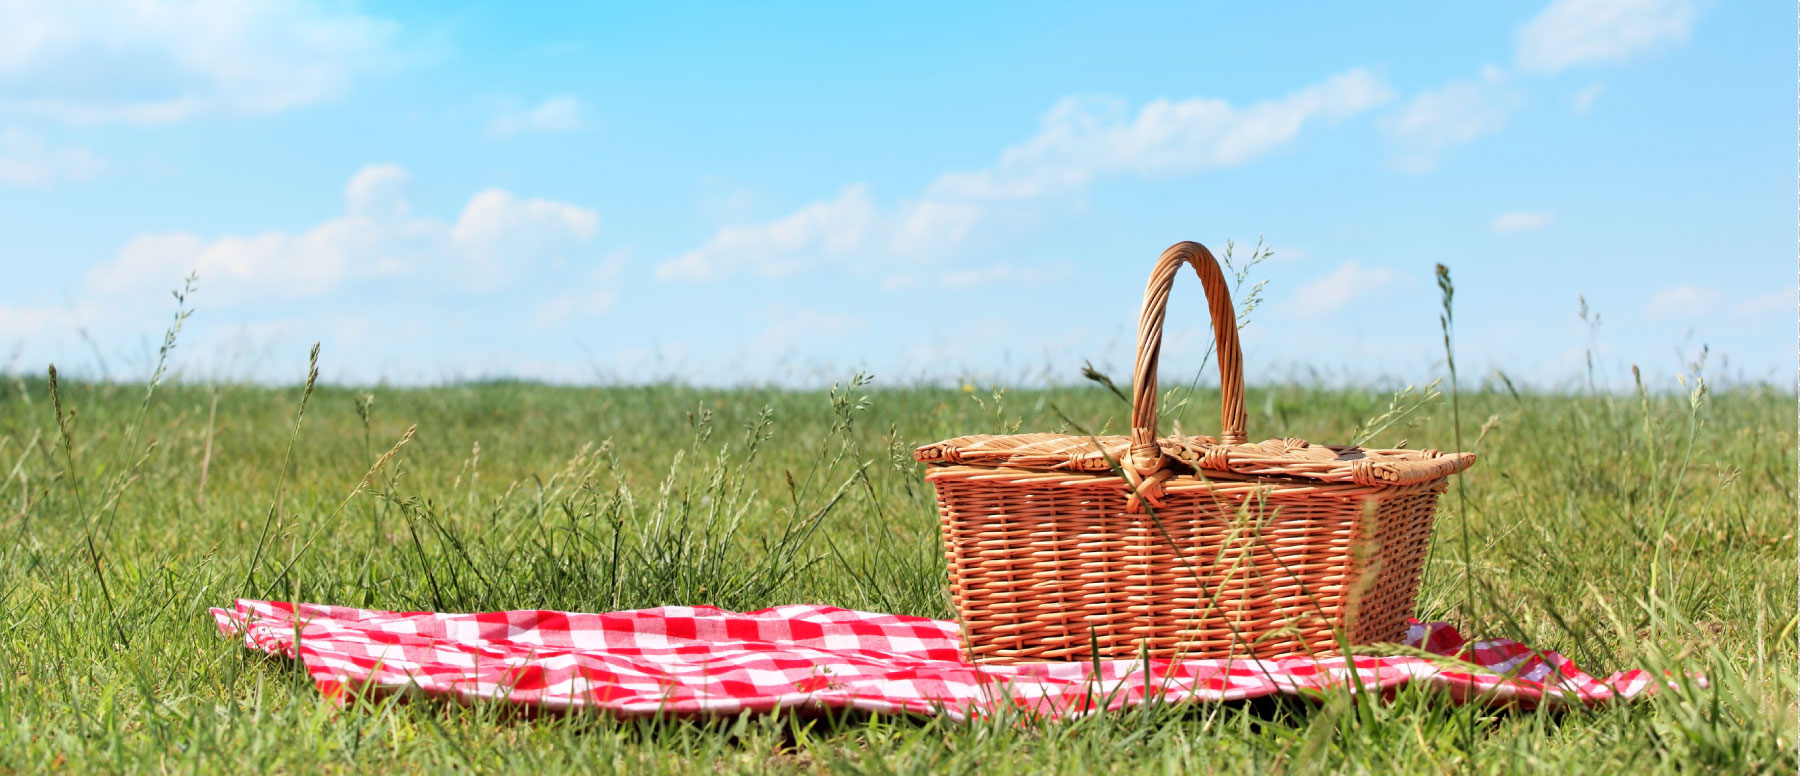 Let's Pack a Picnic!